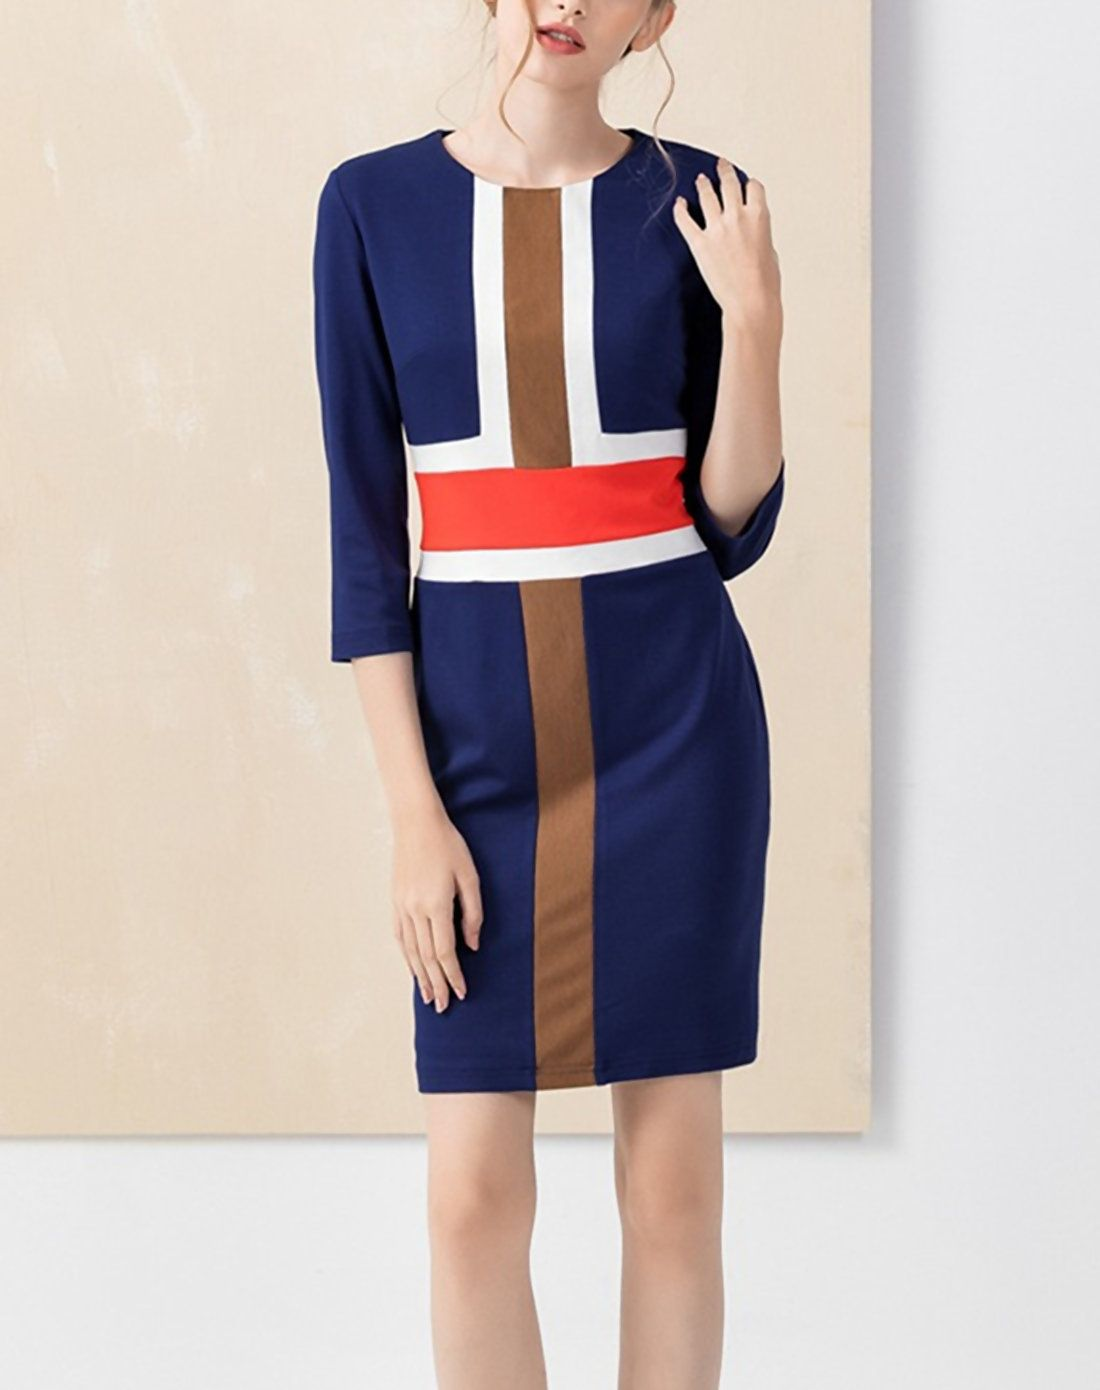 Adorewe vipme sheath dresses yzxh colorblock sleeve navy